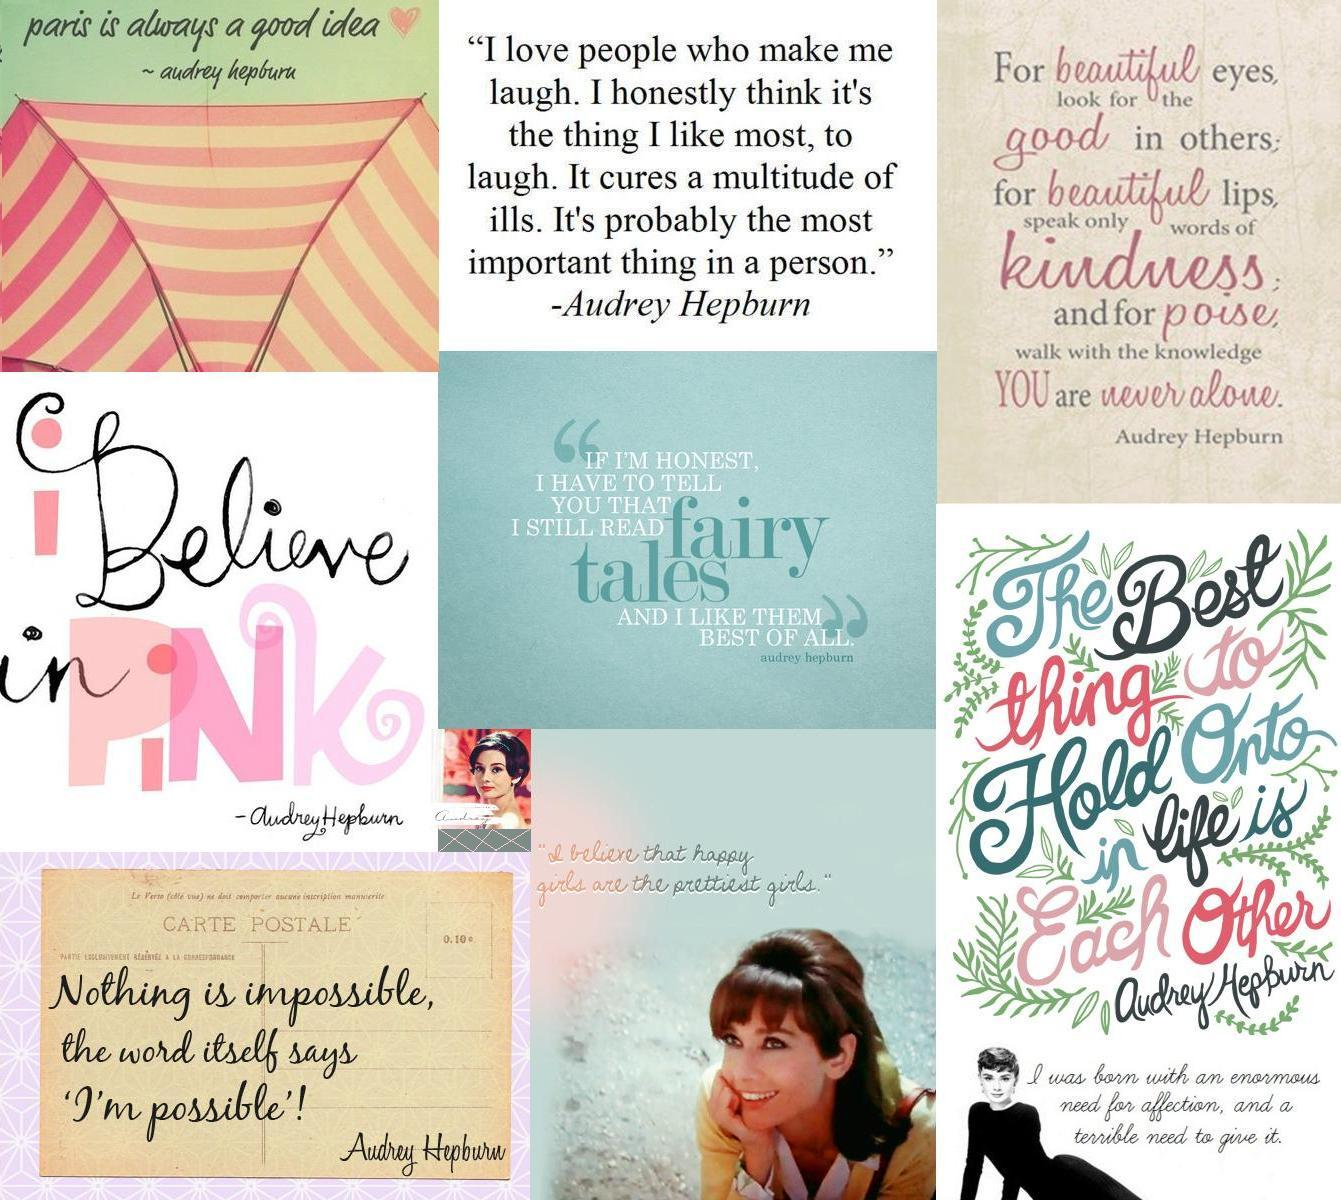 Audrey Hepburn Quotes Colloge   Audrey Hepburn Photo 30663218 1341x1200